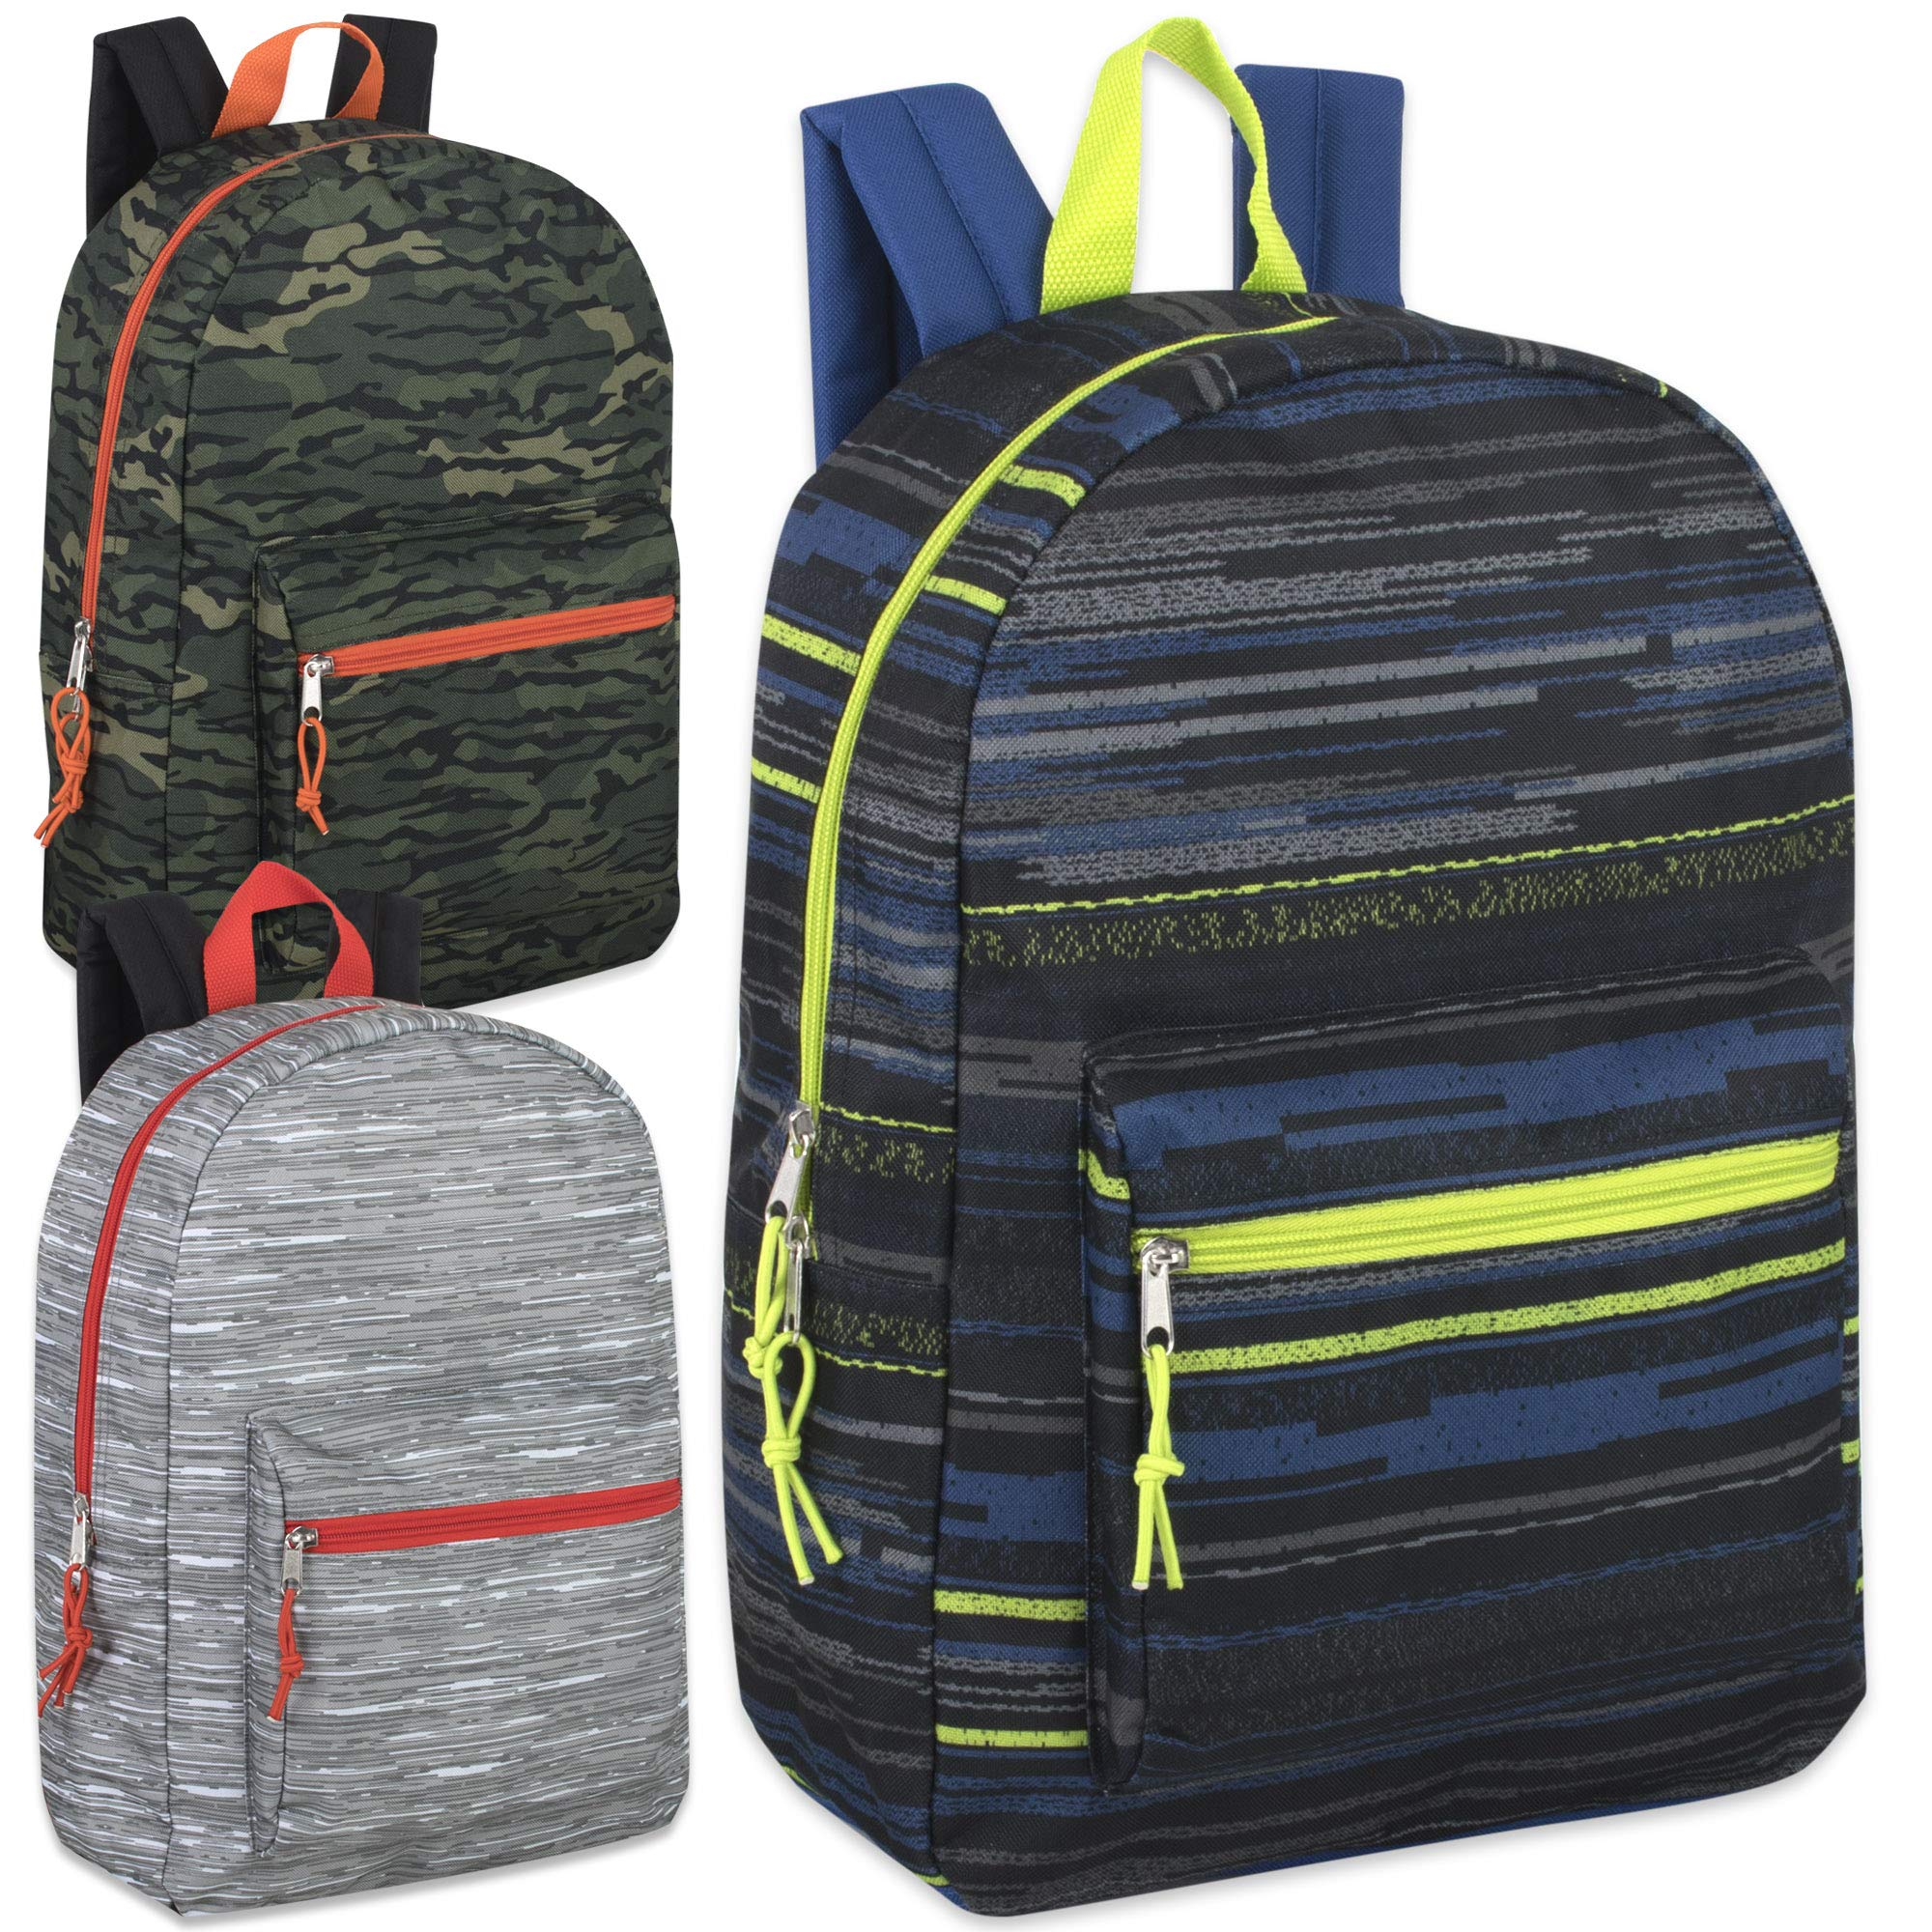 17 Inch Printed Backpacks For Boys & Girls Wholesale Bulk Case Pack Of 24 (Boys 3 Color Assortment) by Trail maker